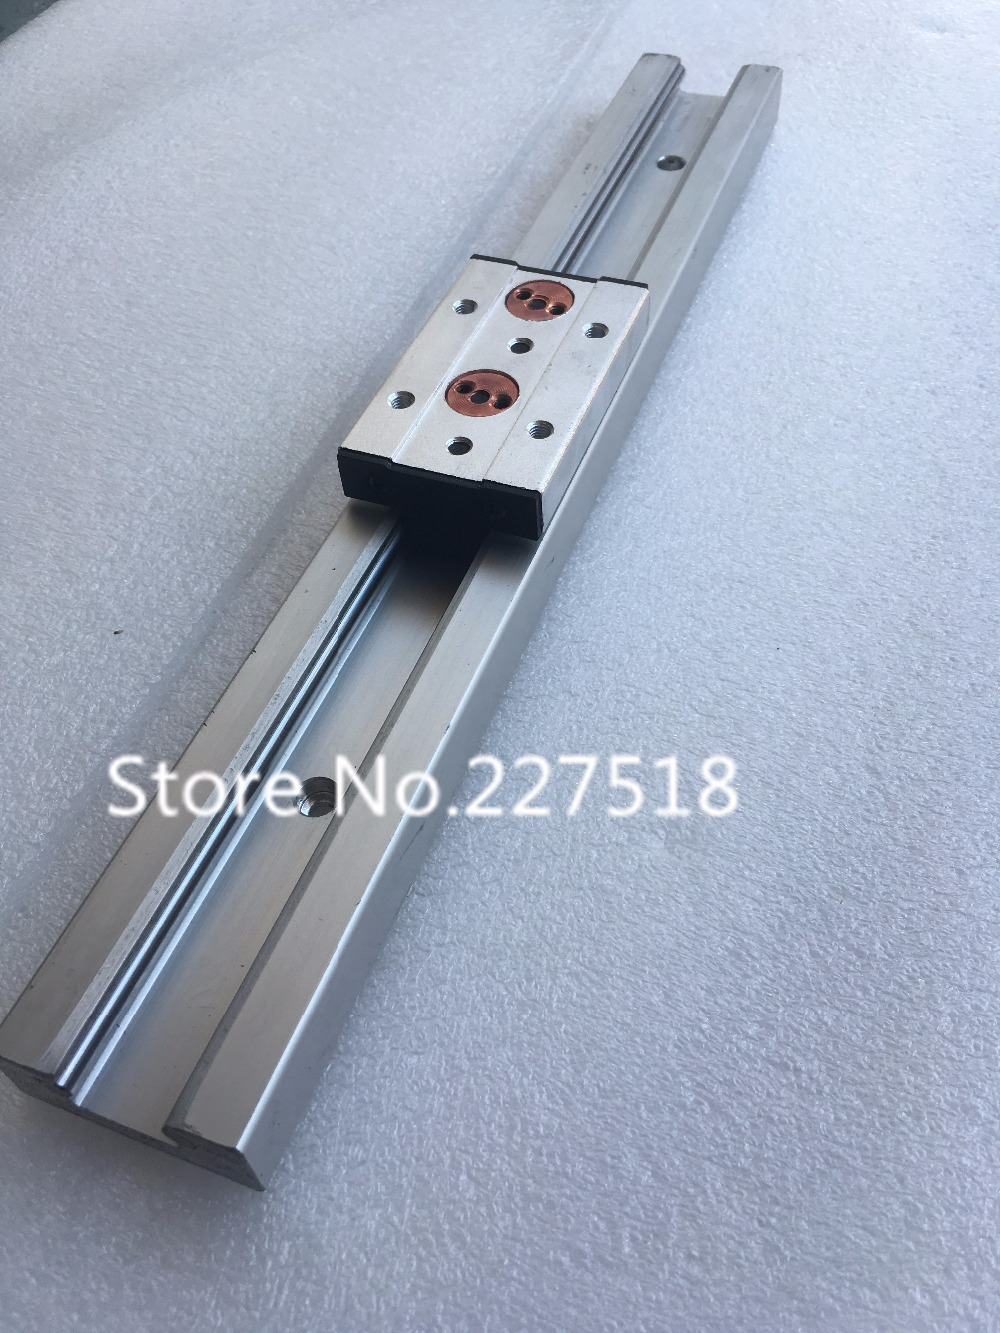 1pcs Double axis roller linear guide SGR35 L350mm +1pcs SGB35UU block multi axis core linear Motion slide rail auminum guide